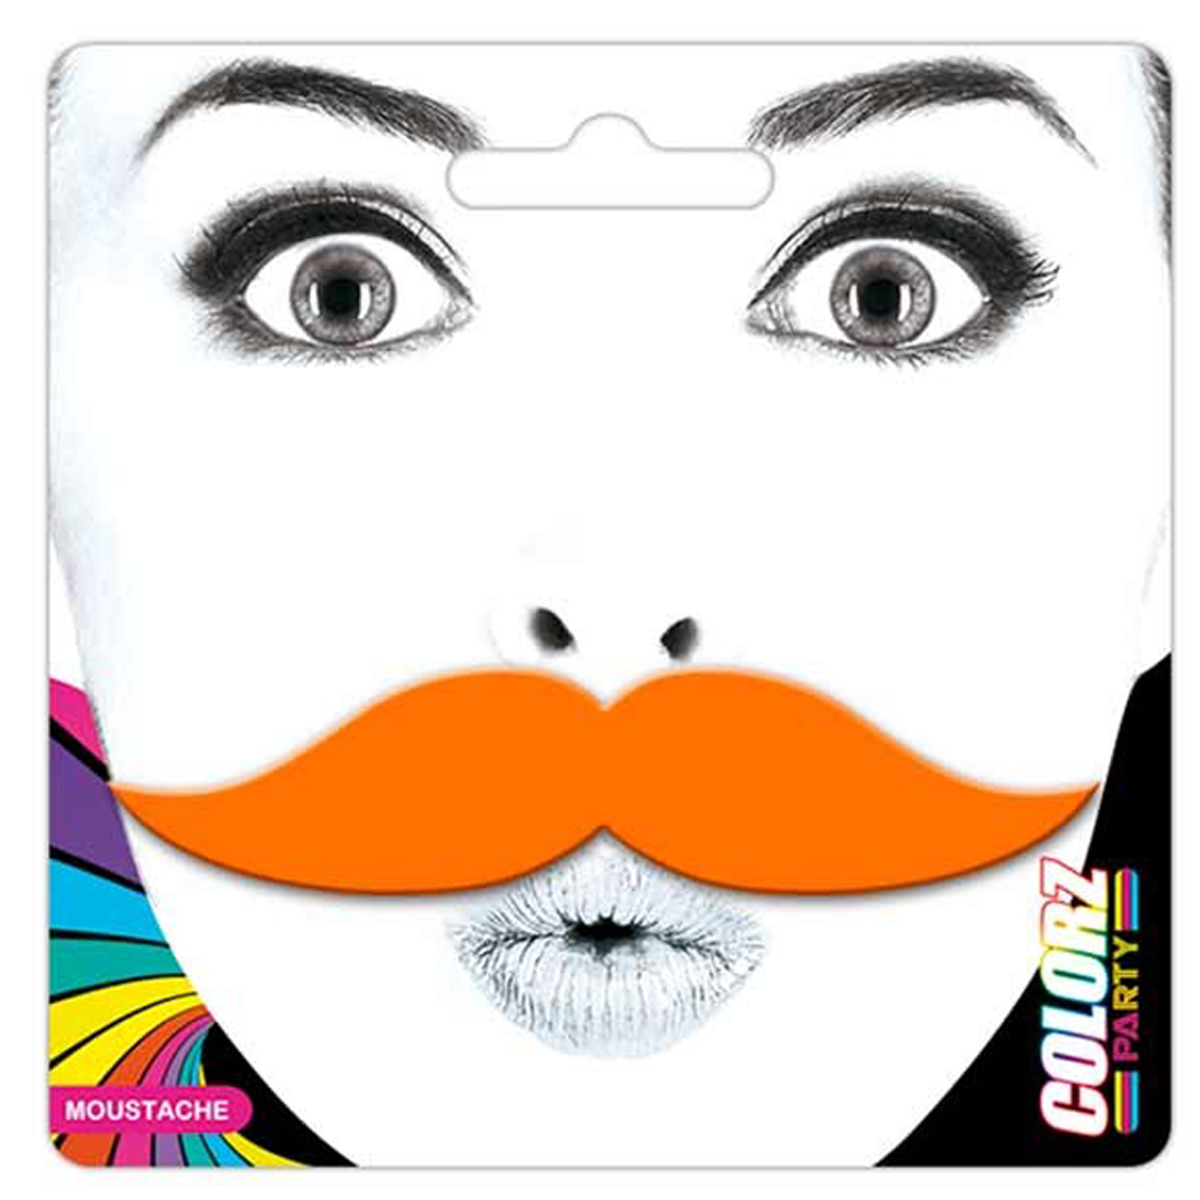 Fausse moustache \'Coloriage\' orange - 9x23 cm - [Q5568]